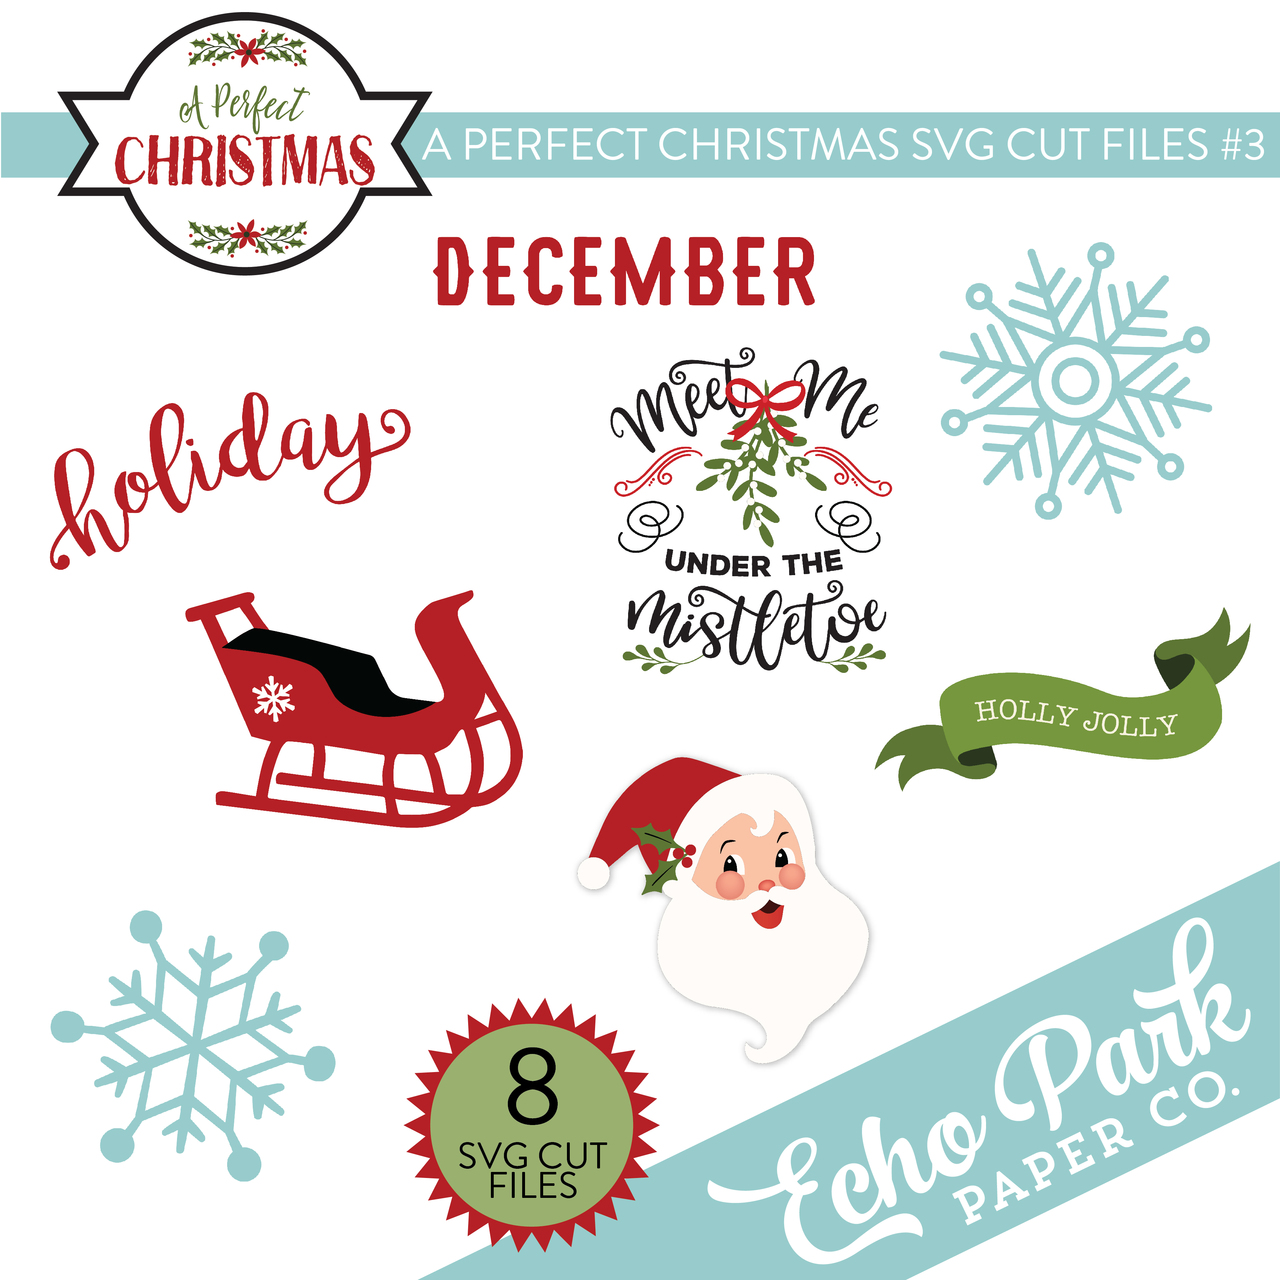 A Perfect Christmas SVG Cut Files #3